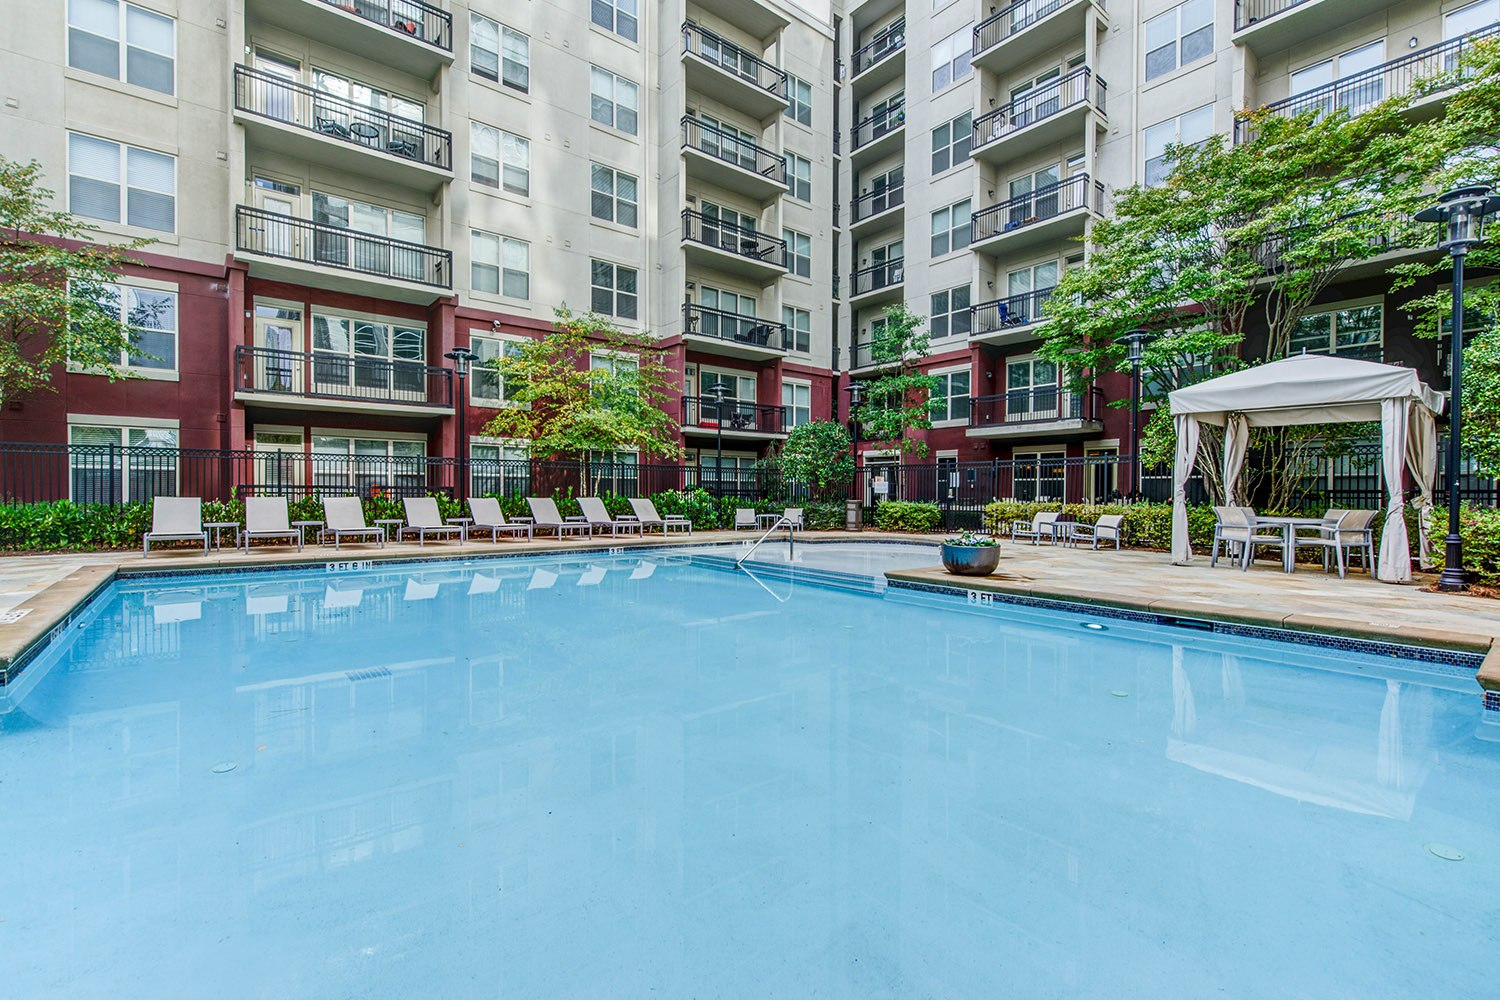 Pool at Peachtree Dunwoody Place